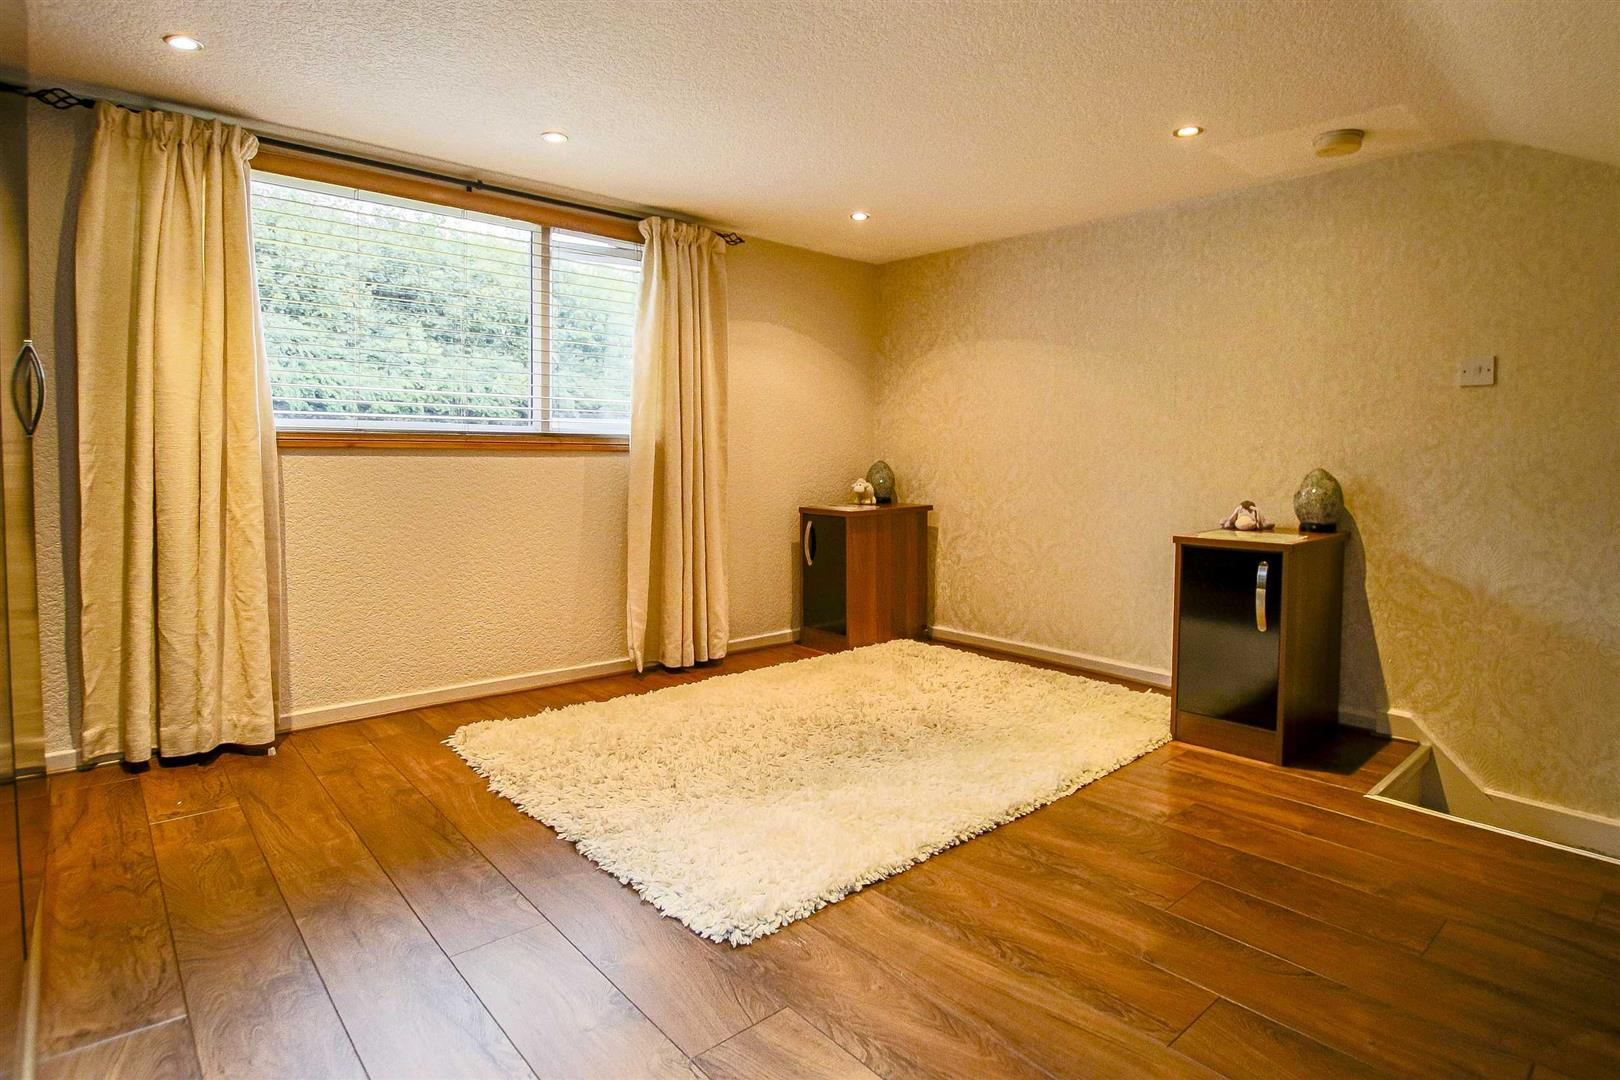 3 Bedroom Mid Terrace House For Sale - Image 8